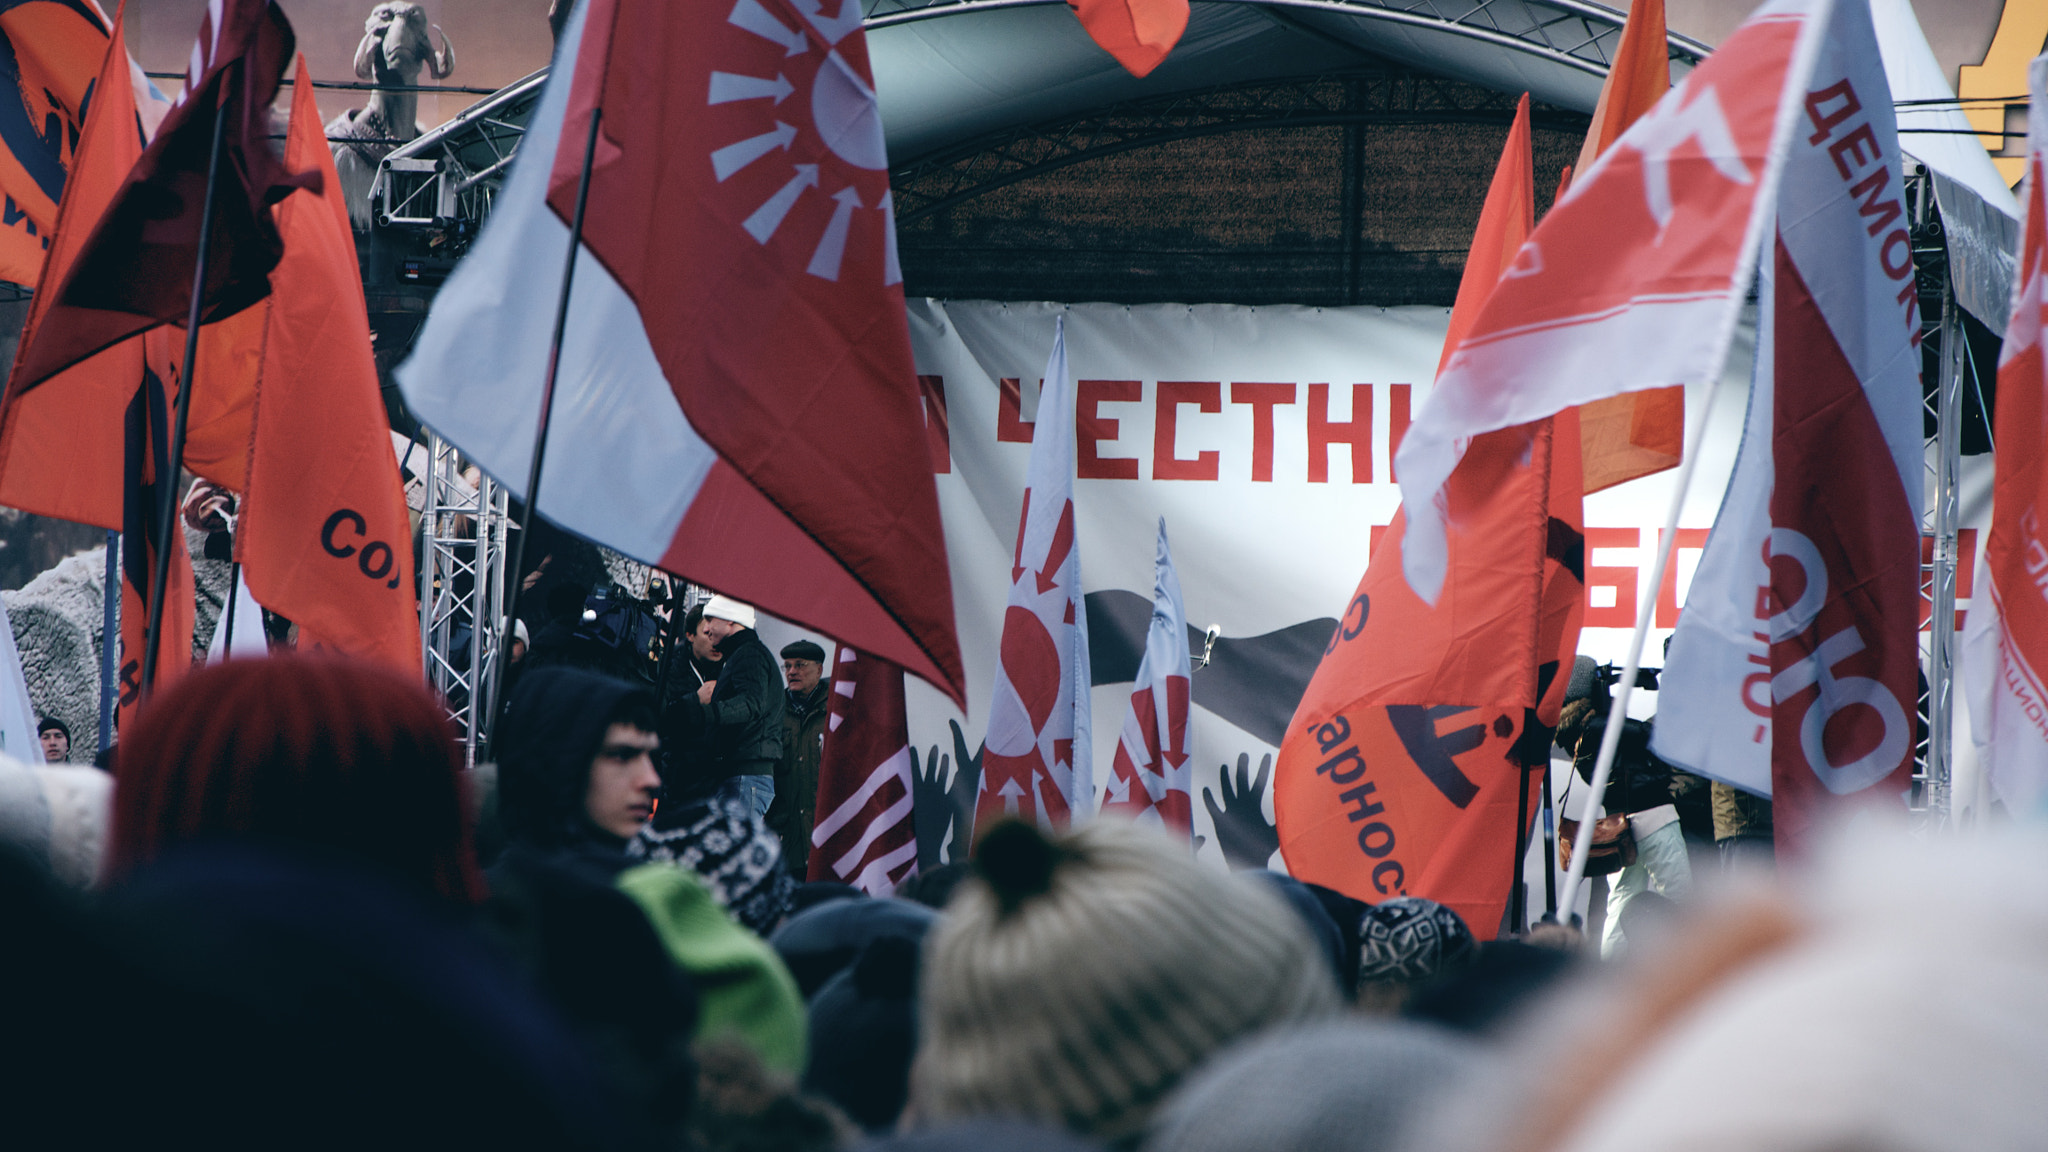 Photograph Protest meeting in Moscow by Kirill Kurashev on 500px